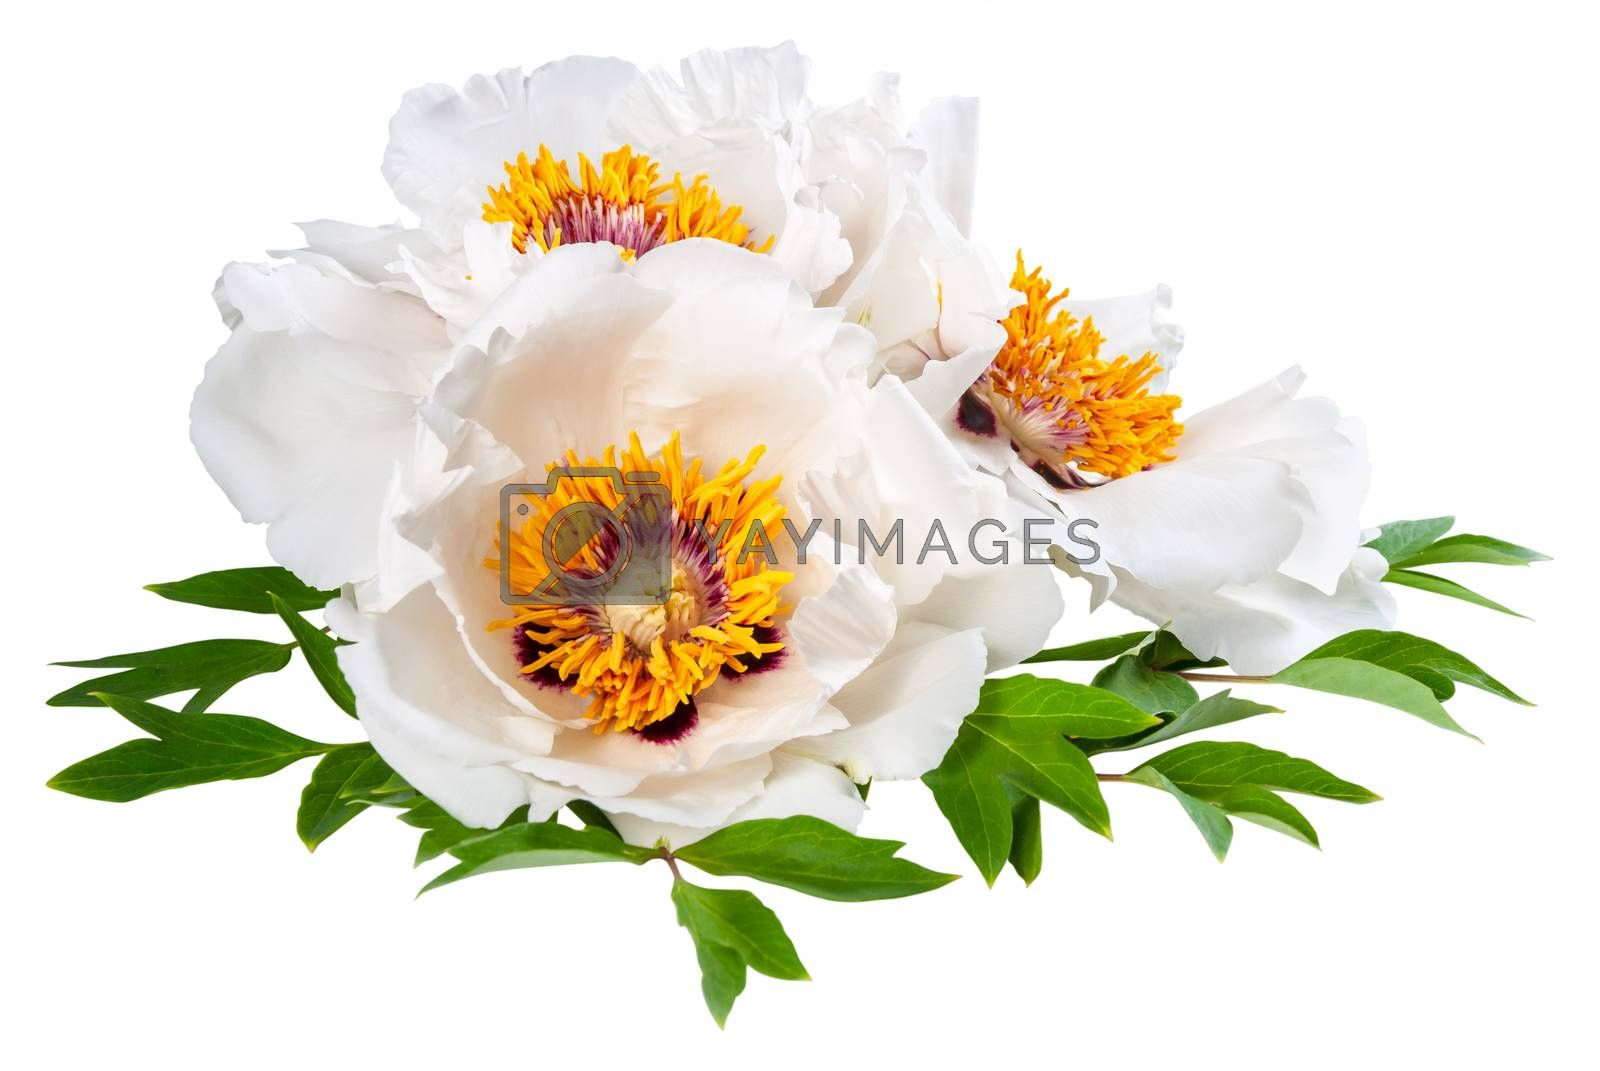 Three peonies flower isolated on white background, card design